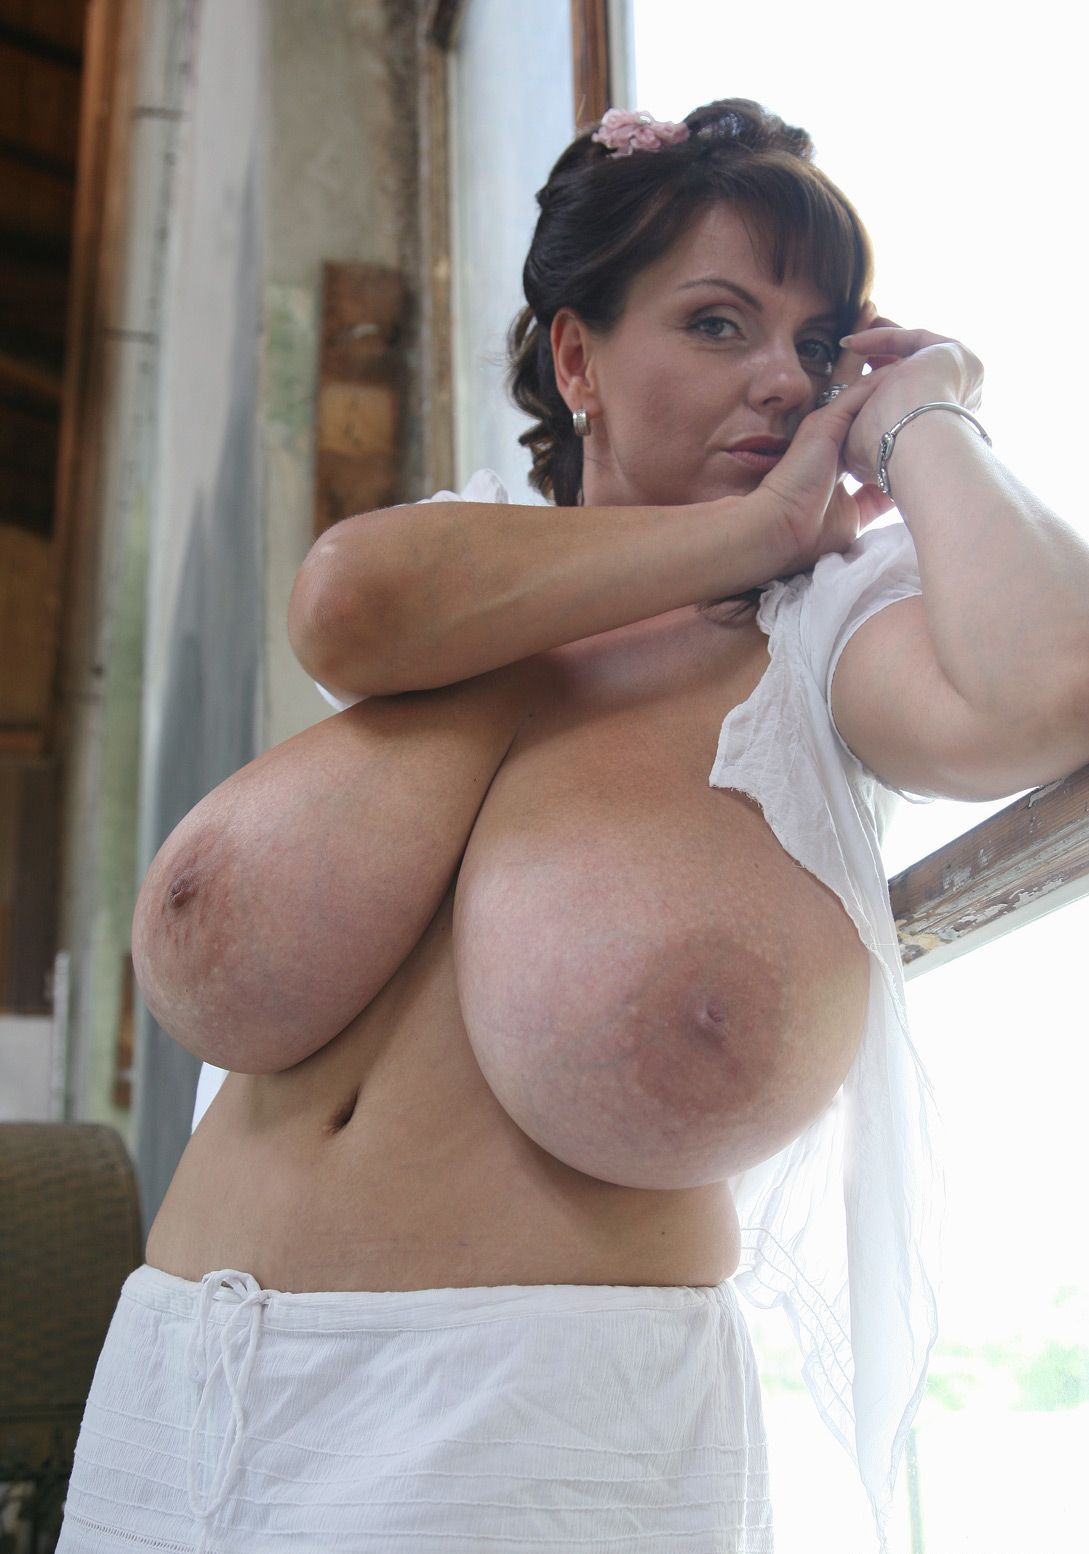 Awesomegirl38 Porn miss boobs realm 2016 round 2 group h boobsrealm | free hot